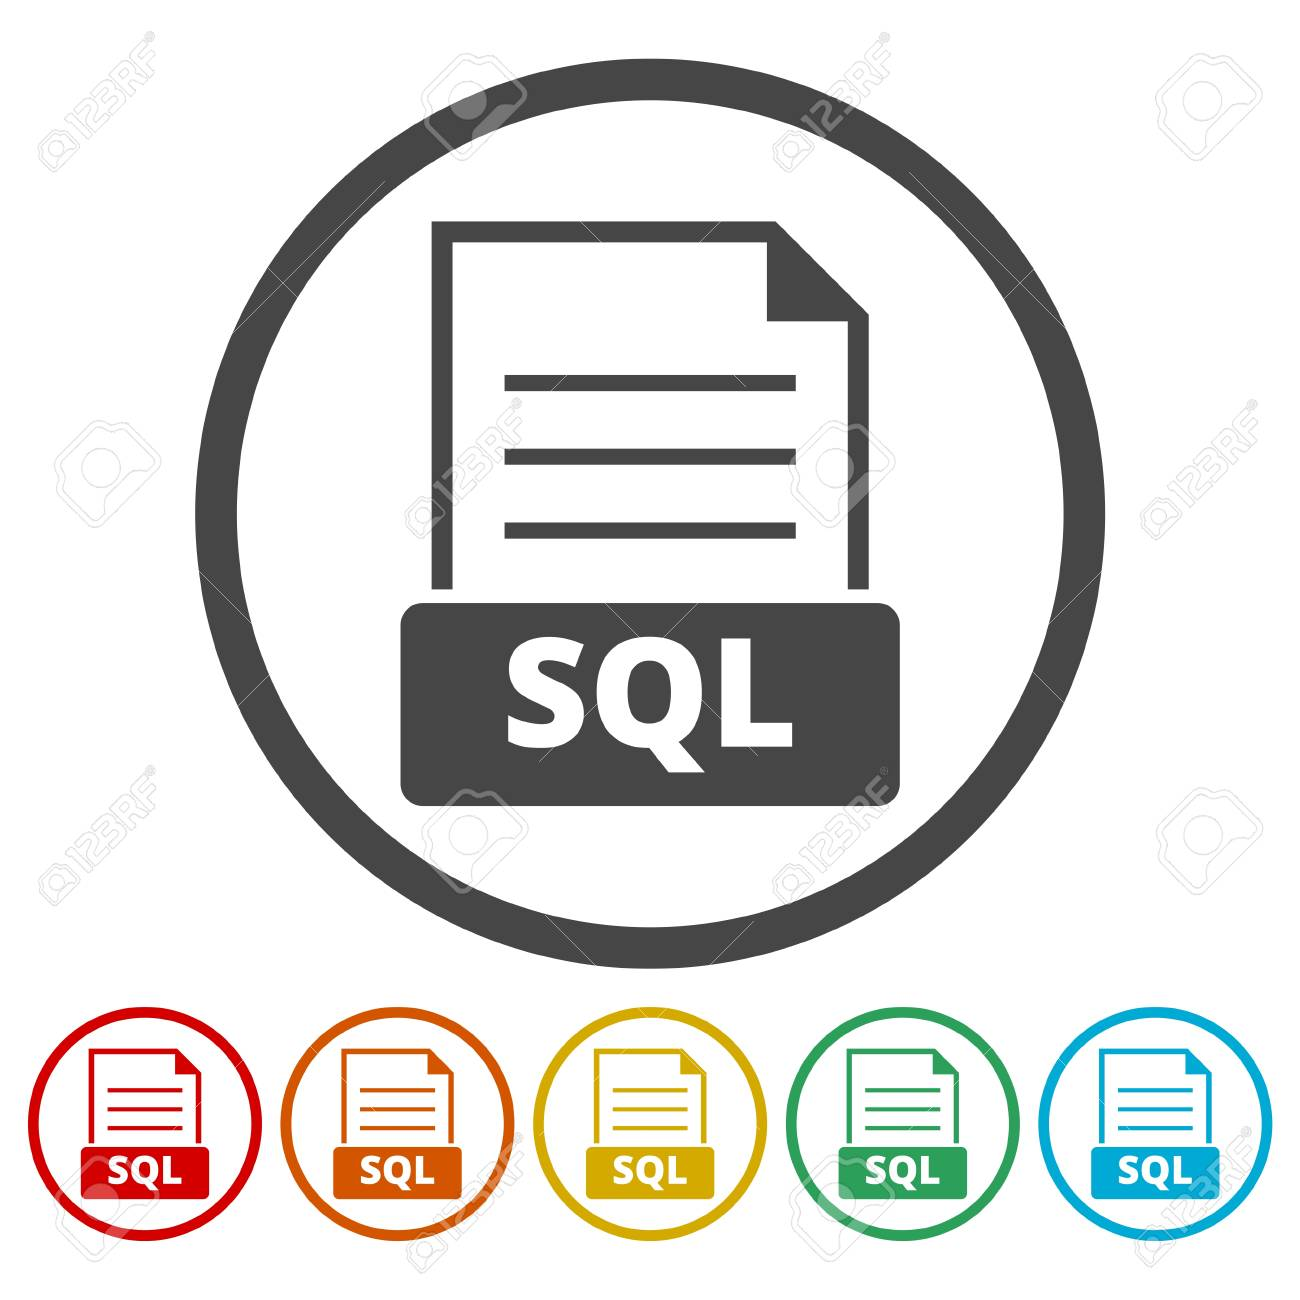 Sql Icon Flat Grey Iconic Symbol In A Light Blue Rounded Frame